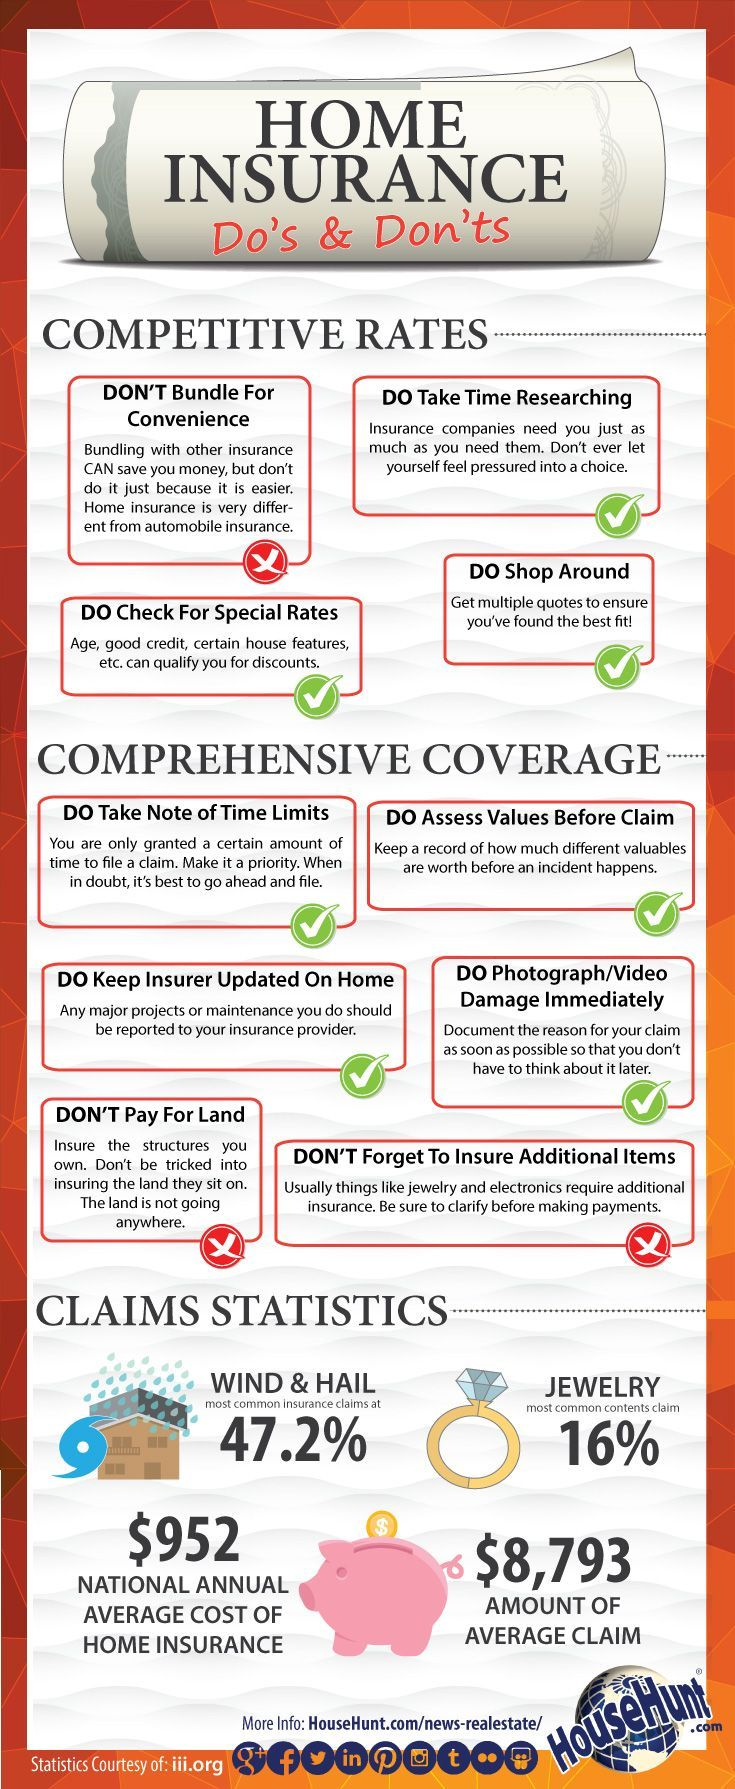 Homeowners Insurance Quote Entrancing 19 Best Home Insurance Images On Pinterest  Home Insurance Real . Design Decoration